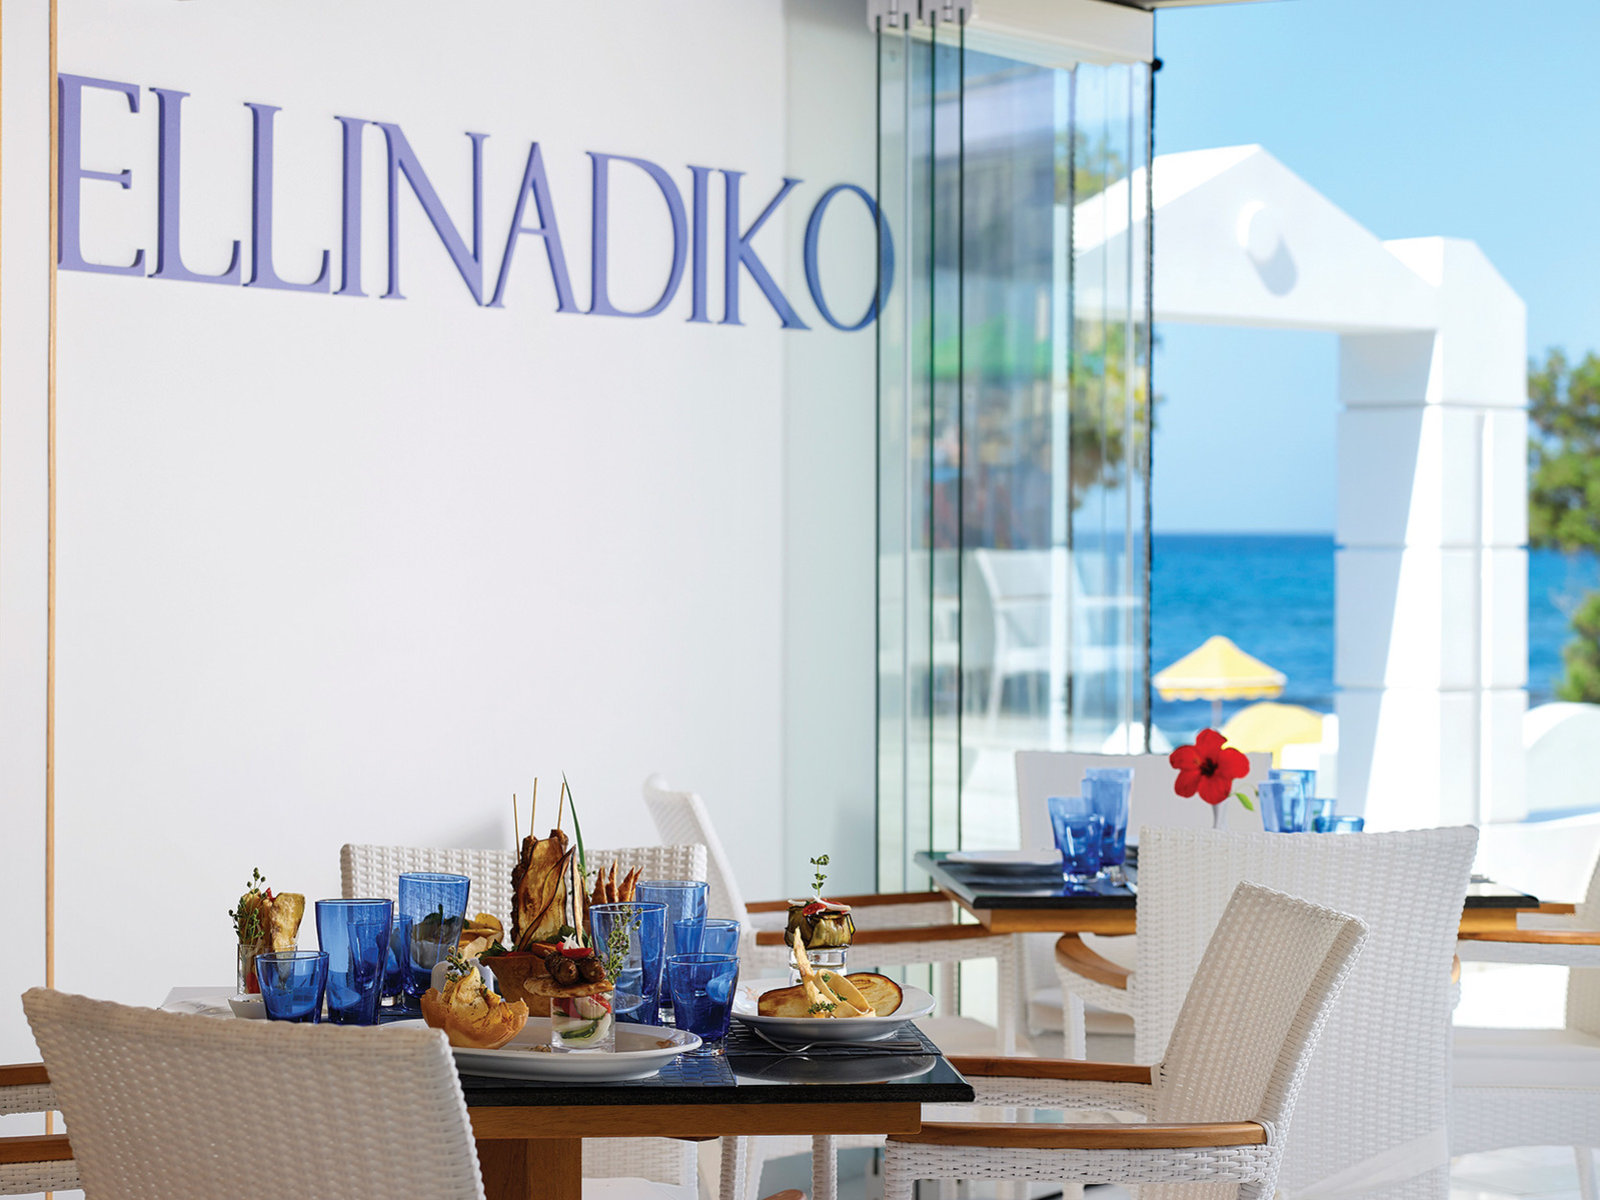 Ellinadiko Restaurant